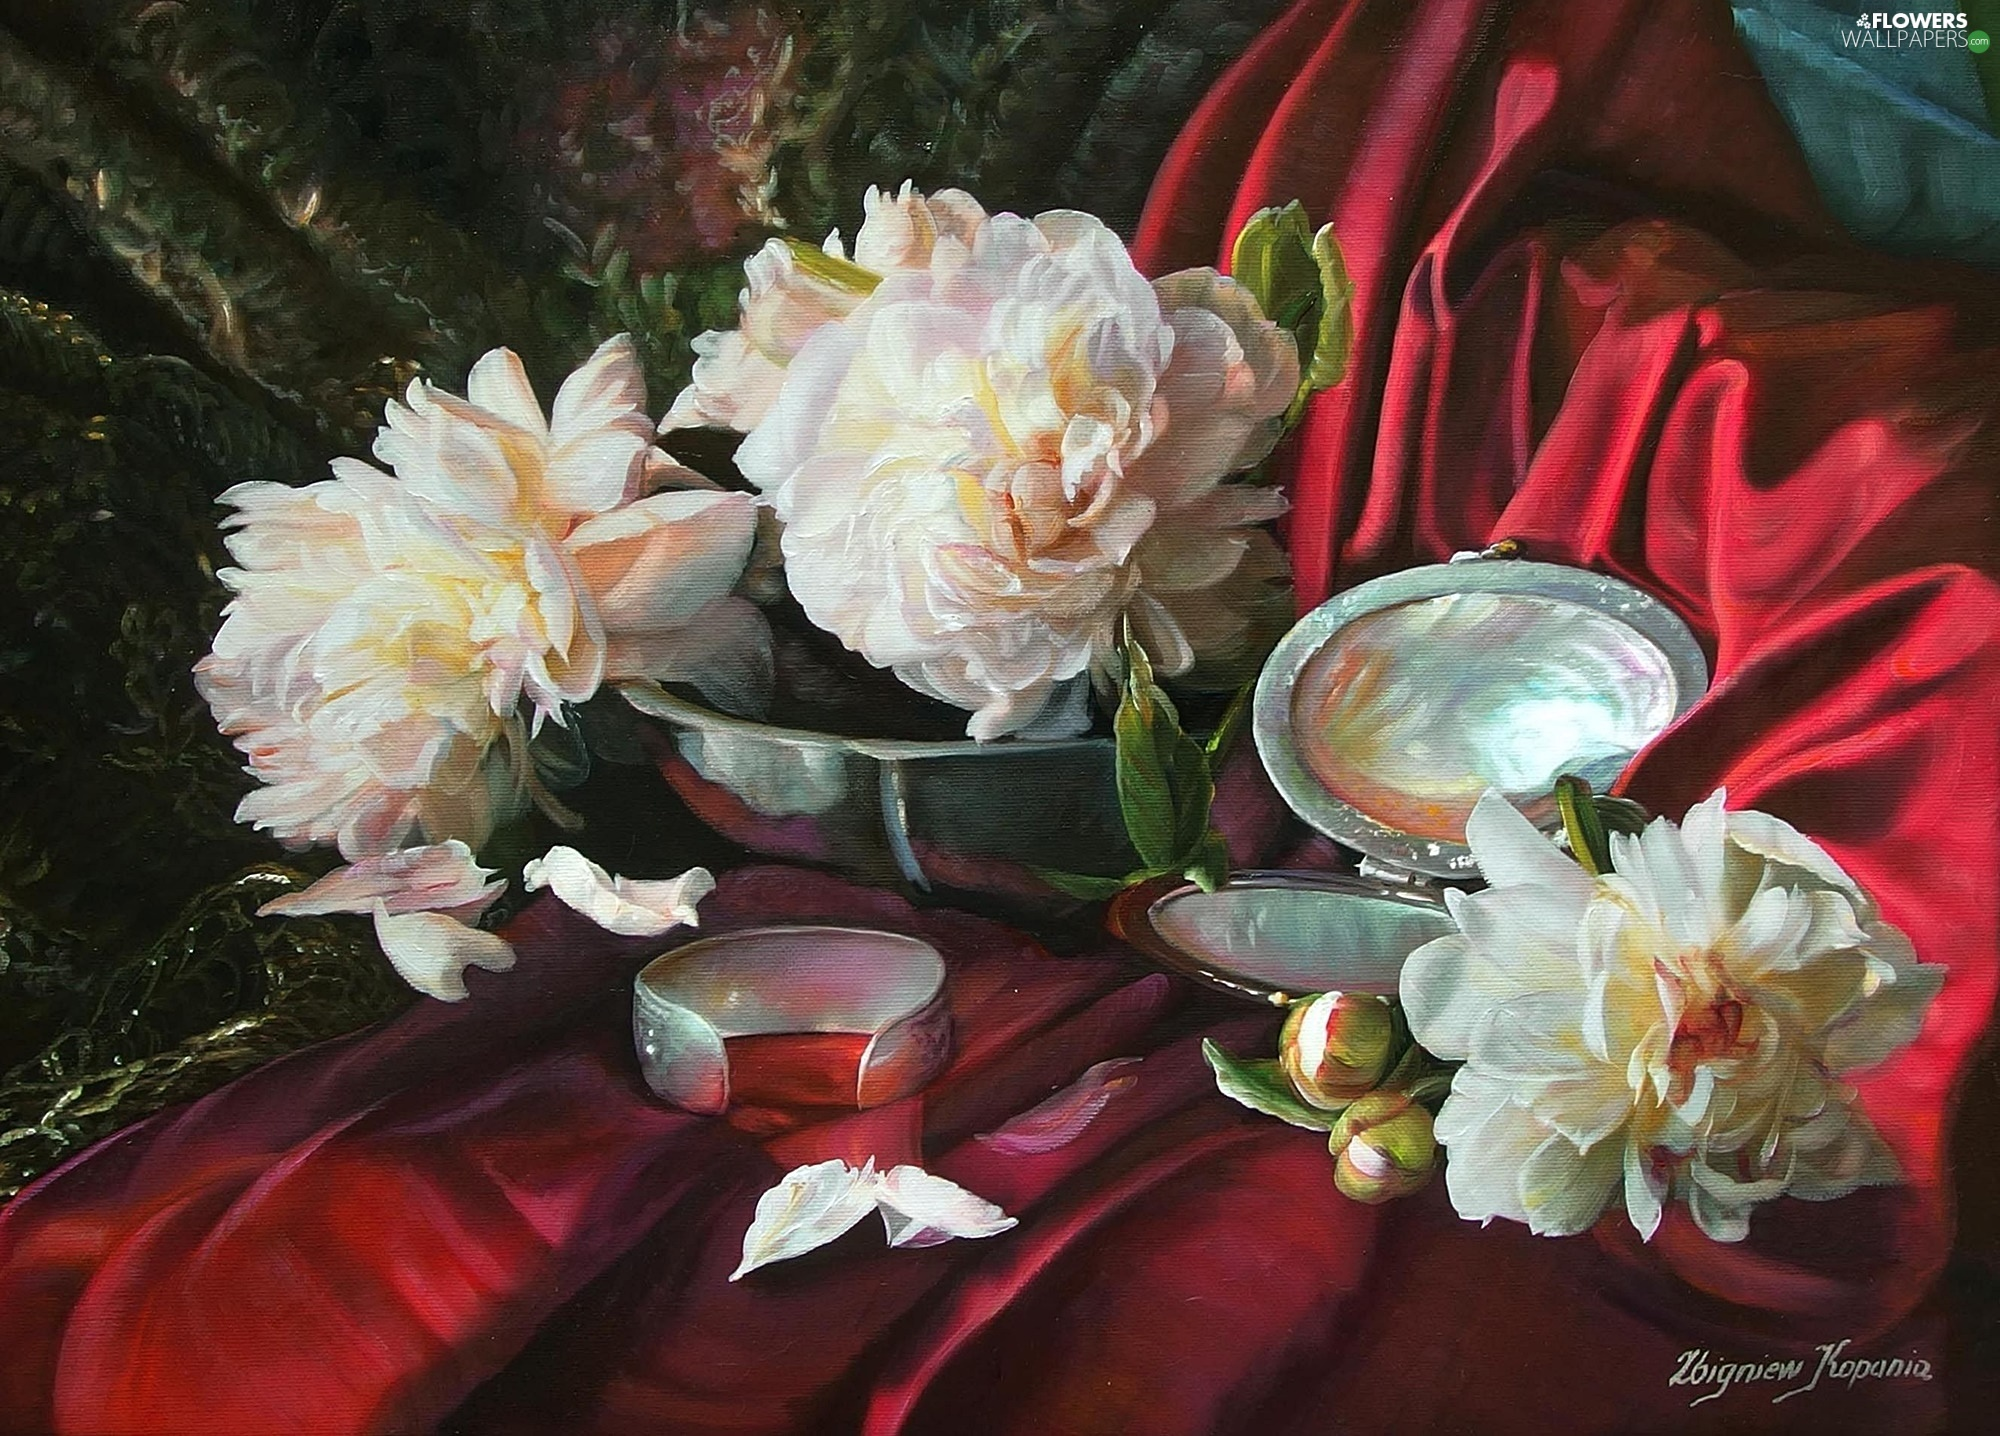 painting, Flowers, composition, Peonies, mirror, picture, Zbigniew Kopania, bracelet